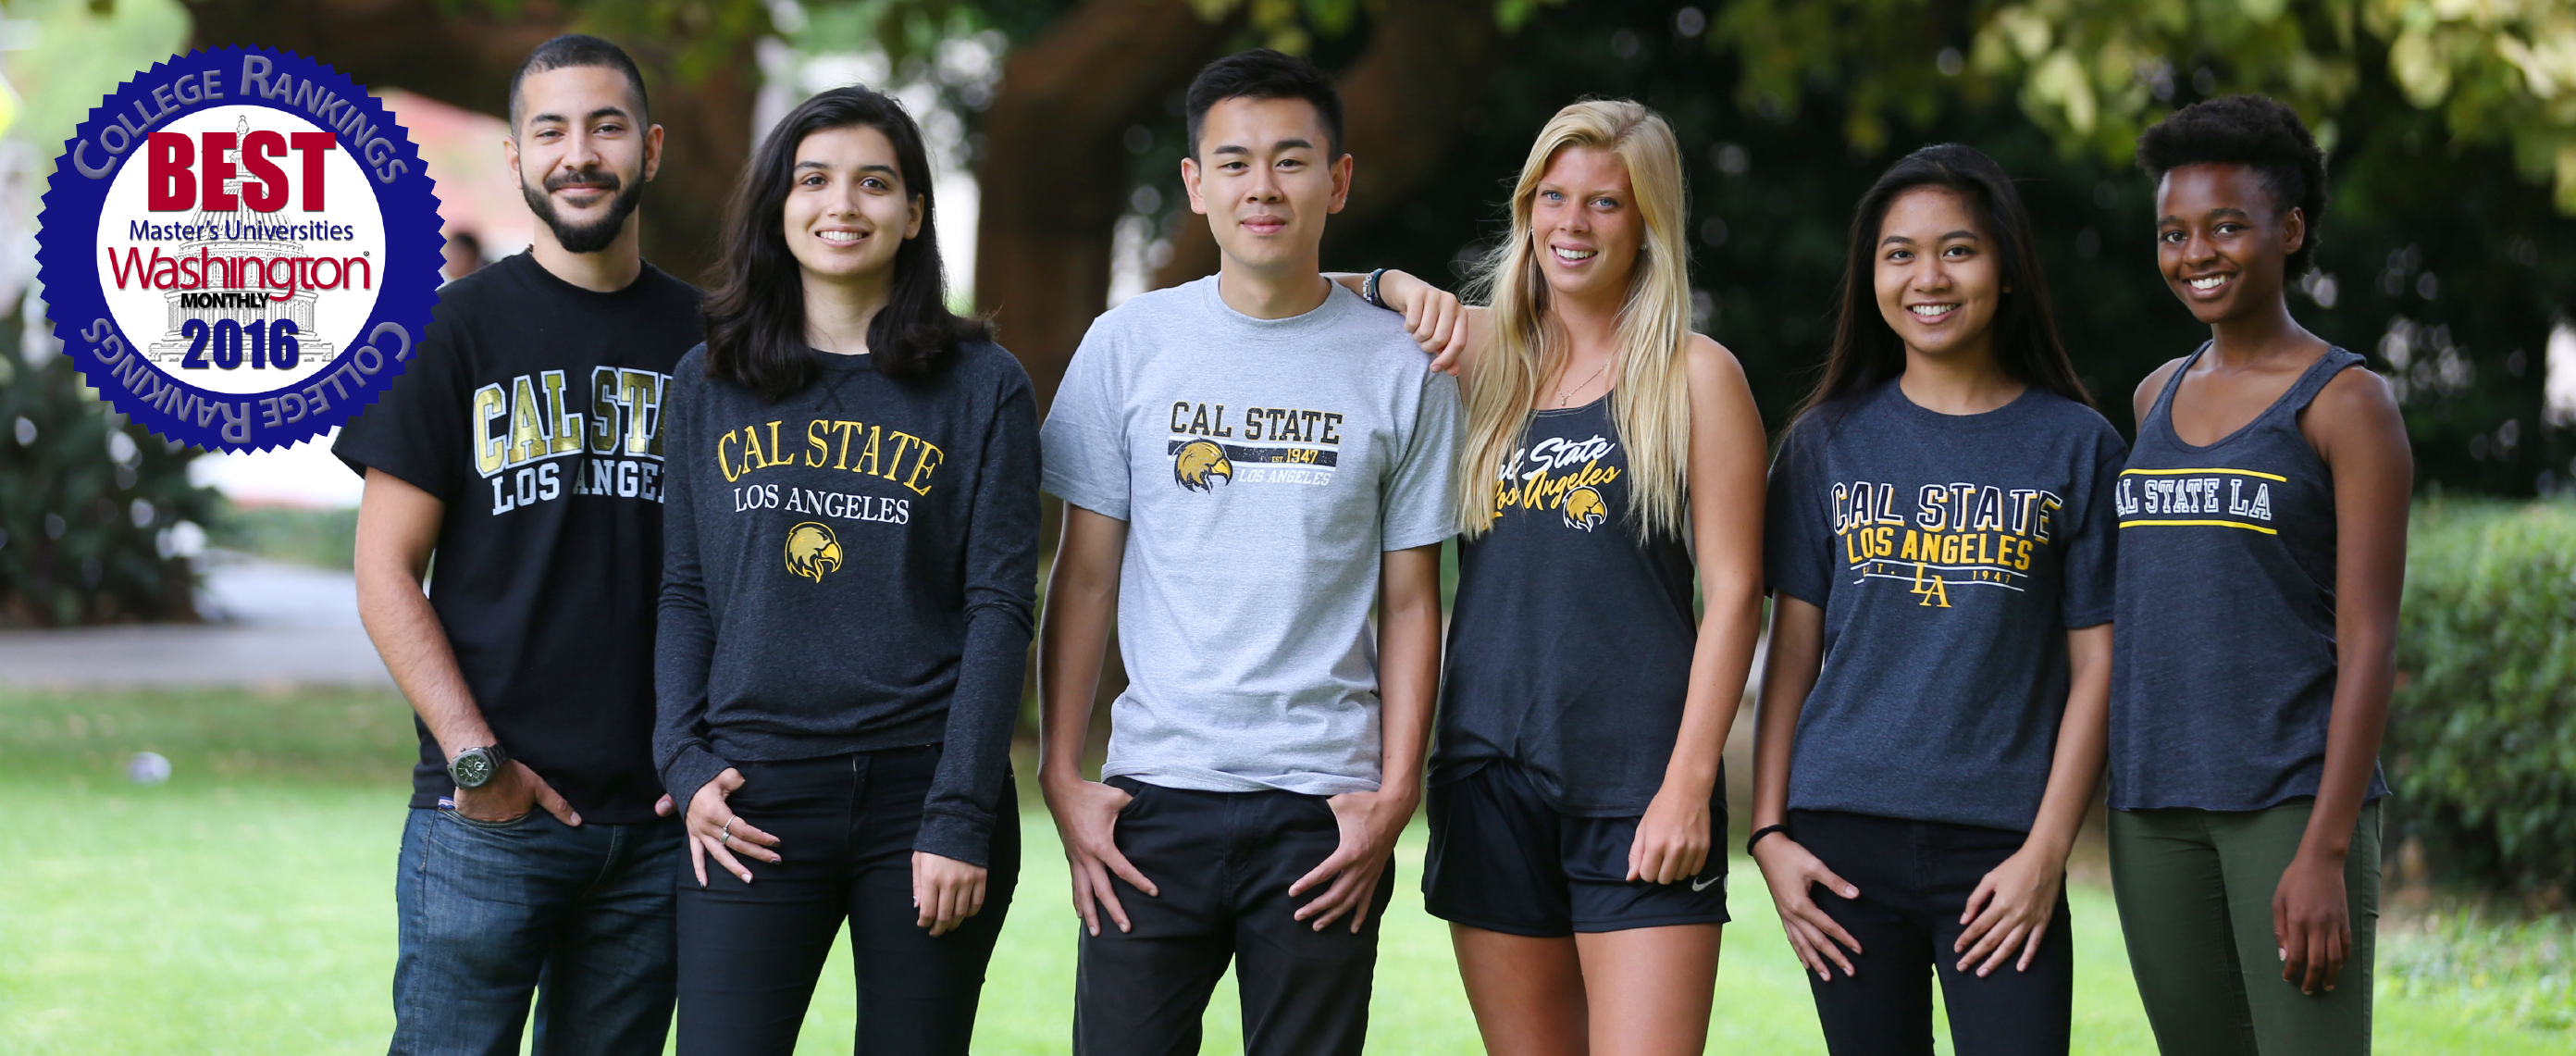 Cal State LA ranks in Washington Monthly